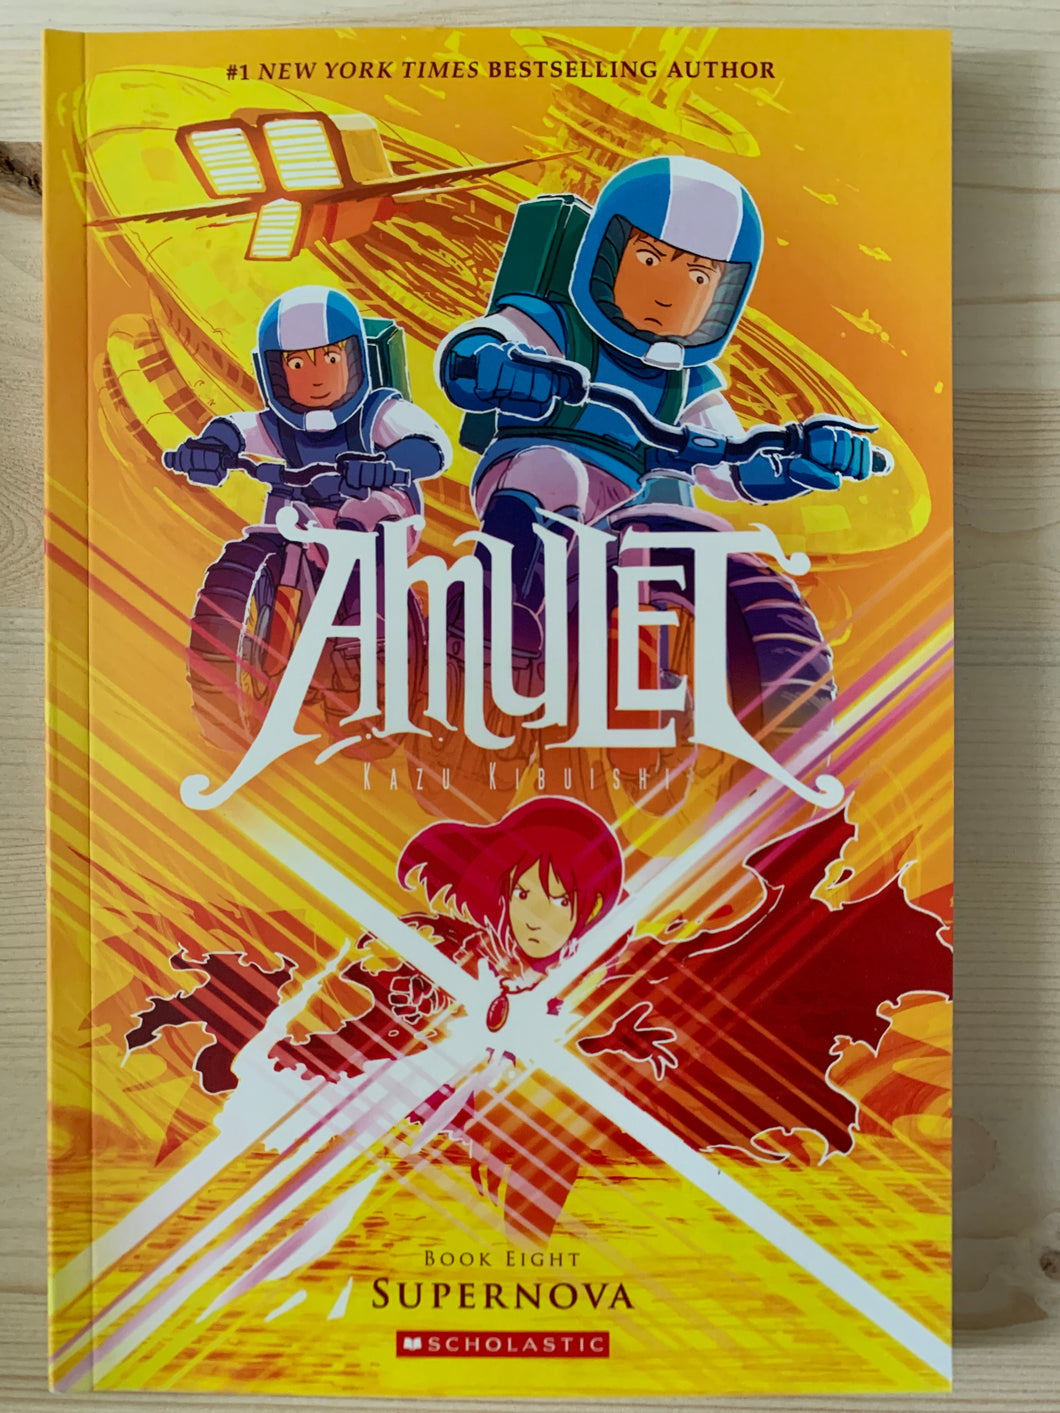 Amulet Book Eight: Supernova